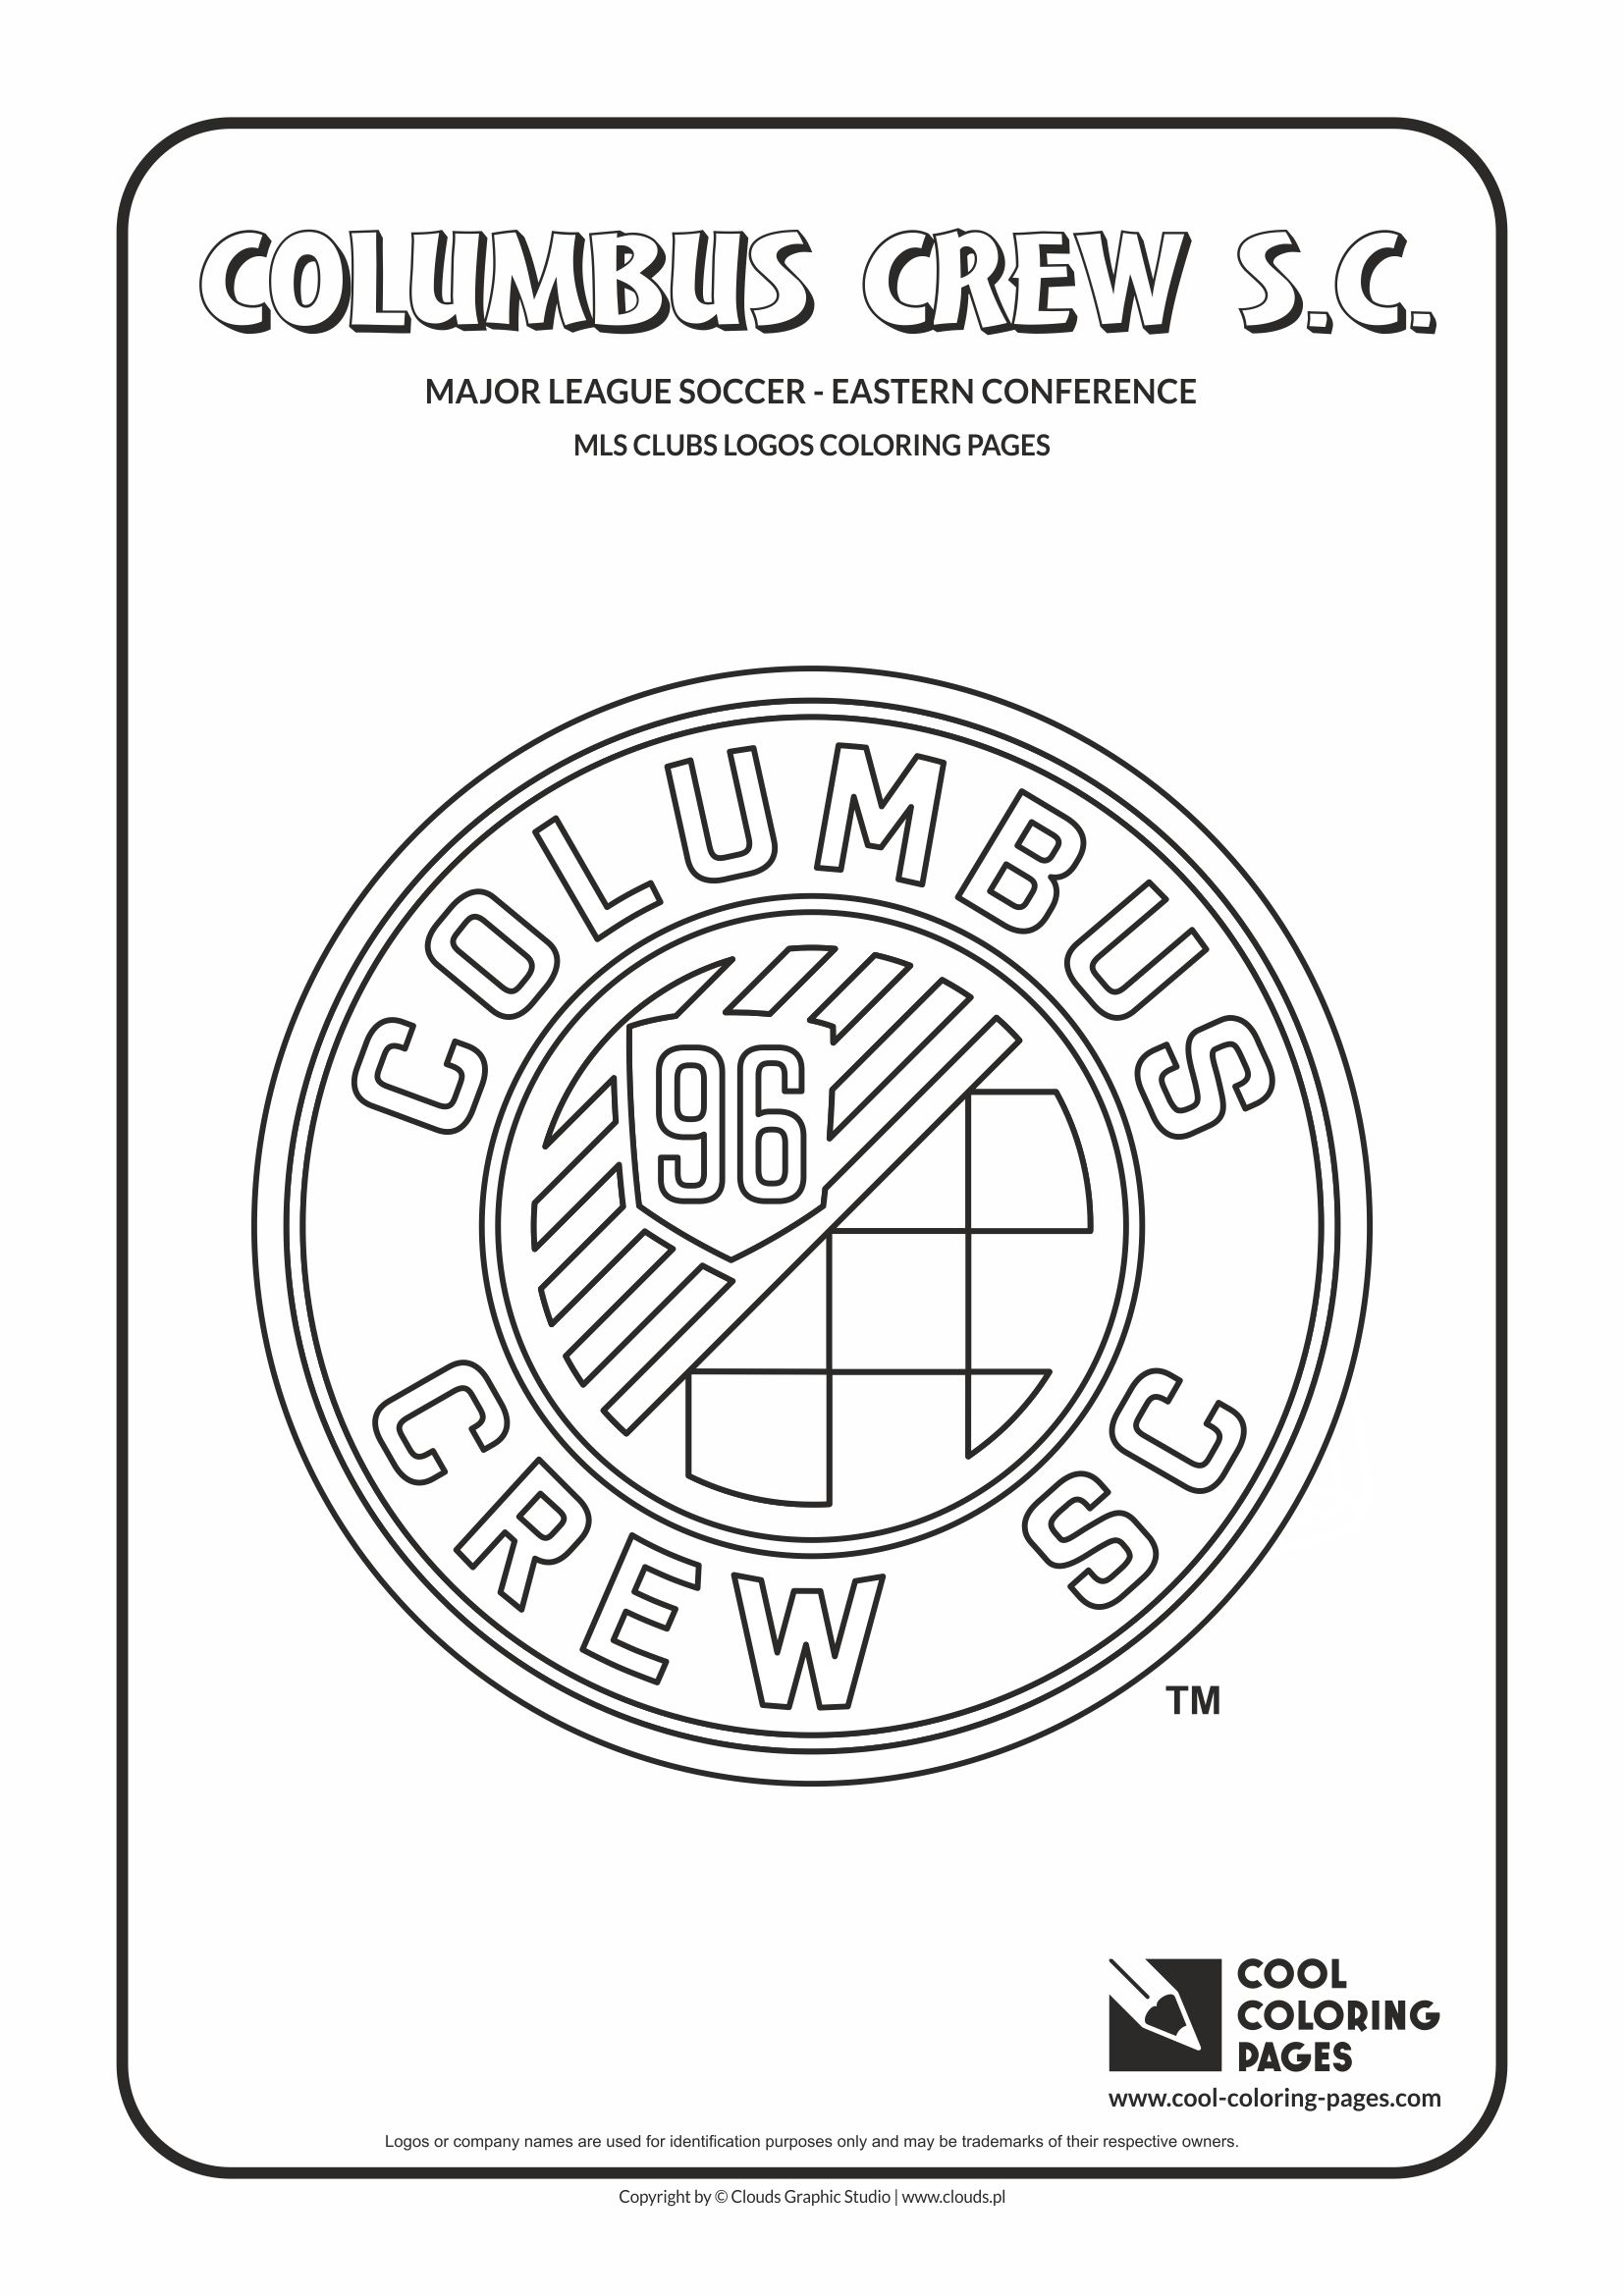 Cool Coloring Pages - Major League Soccer Logos - Eastern Conference / Columbus Crew SC logo / Coloring page with Columbus Crew SC logo